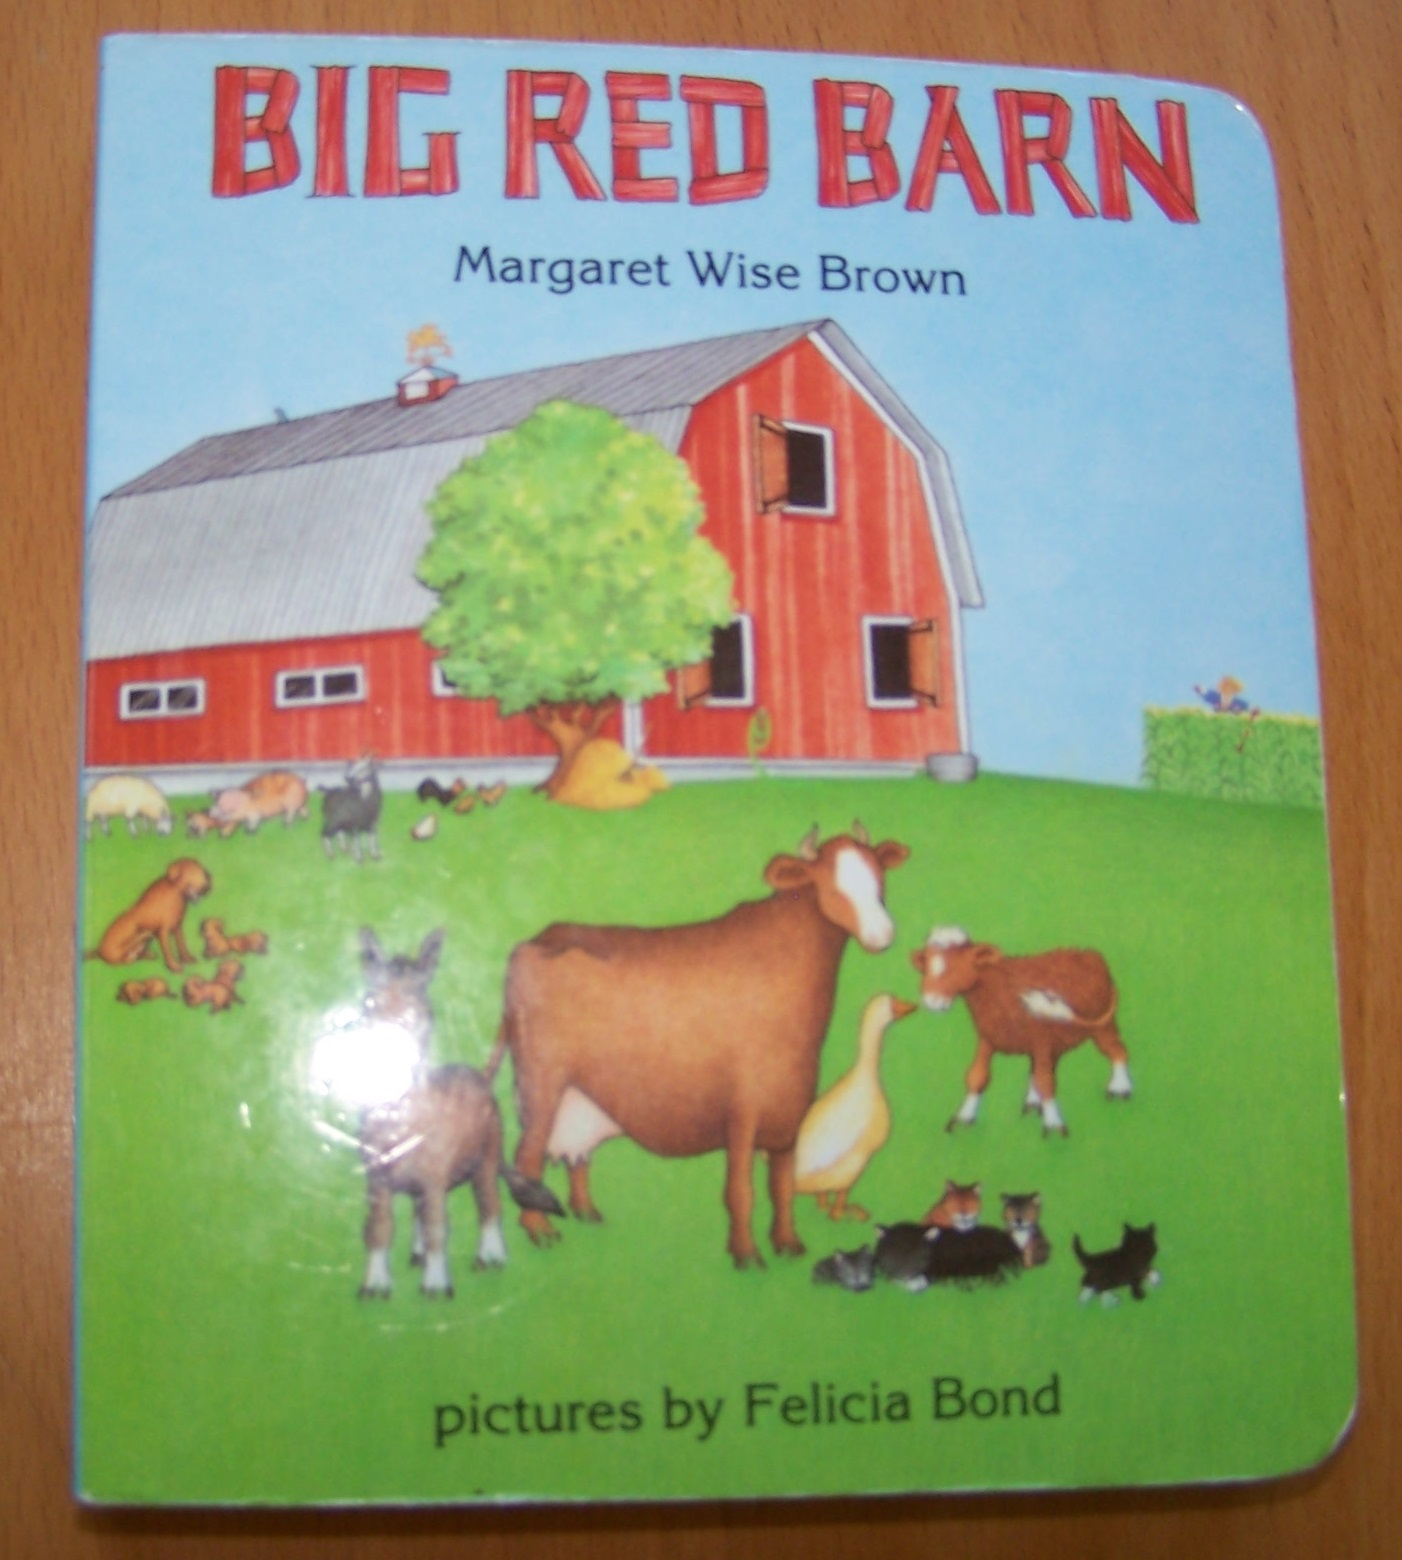 the big red barn by margaret wise brown Nothing is more important than an area designated for our youngest visitors and their adult caregivers modeled after margaret wise brown's, the big red barn,.